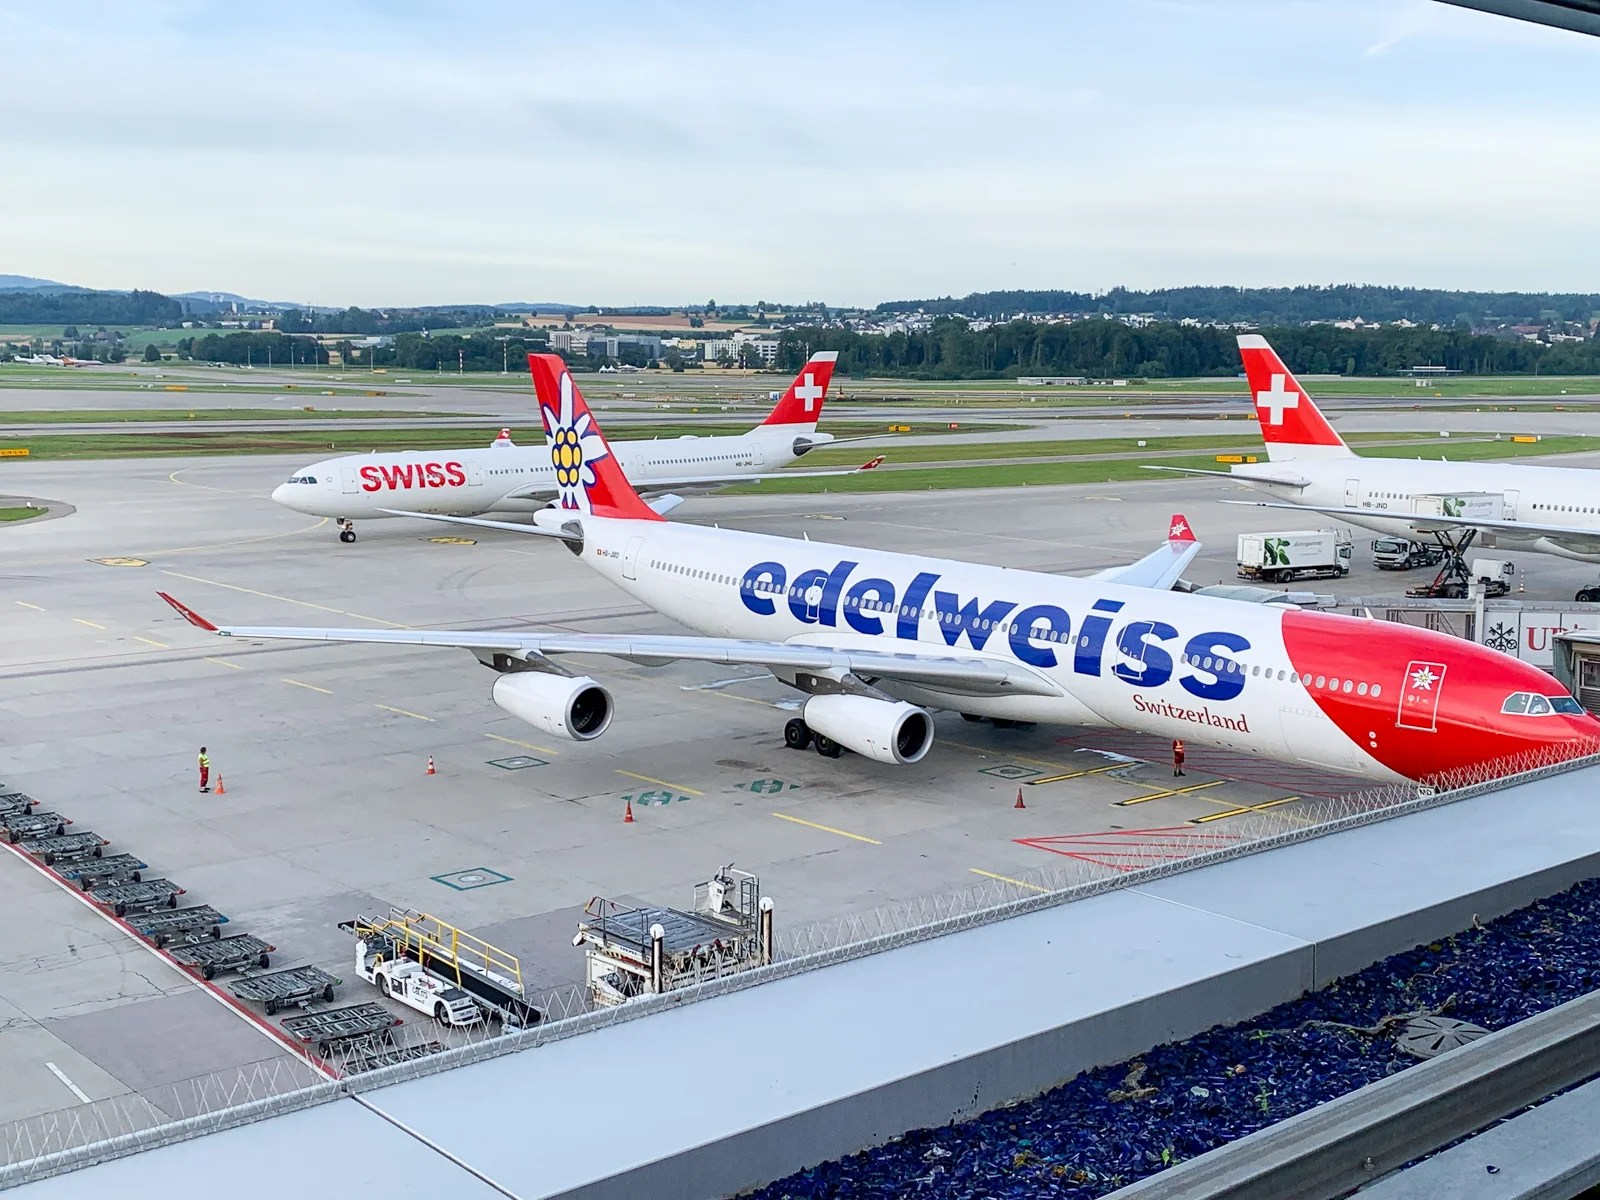 The Swiss first-class ground experience that stole my AvGeek heart